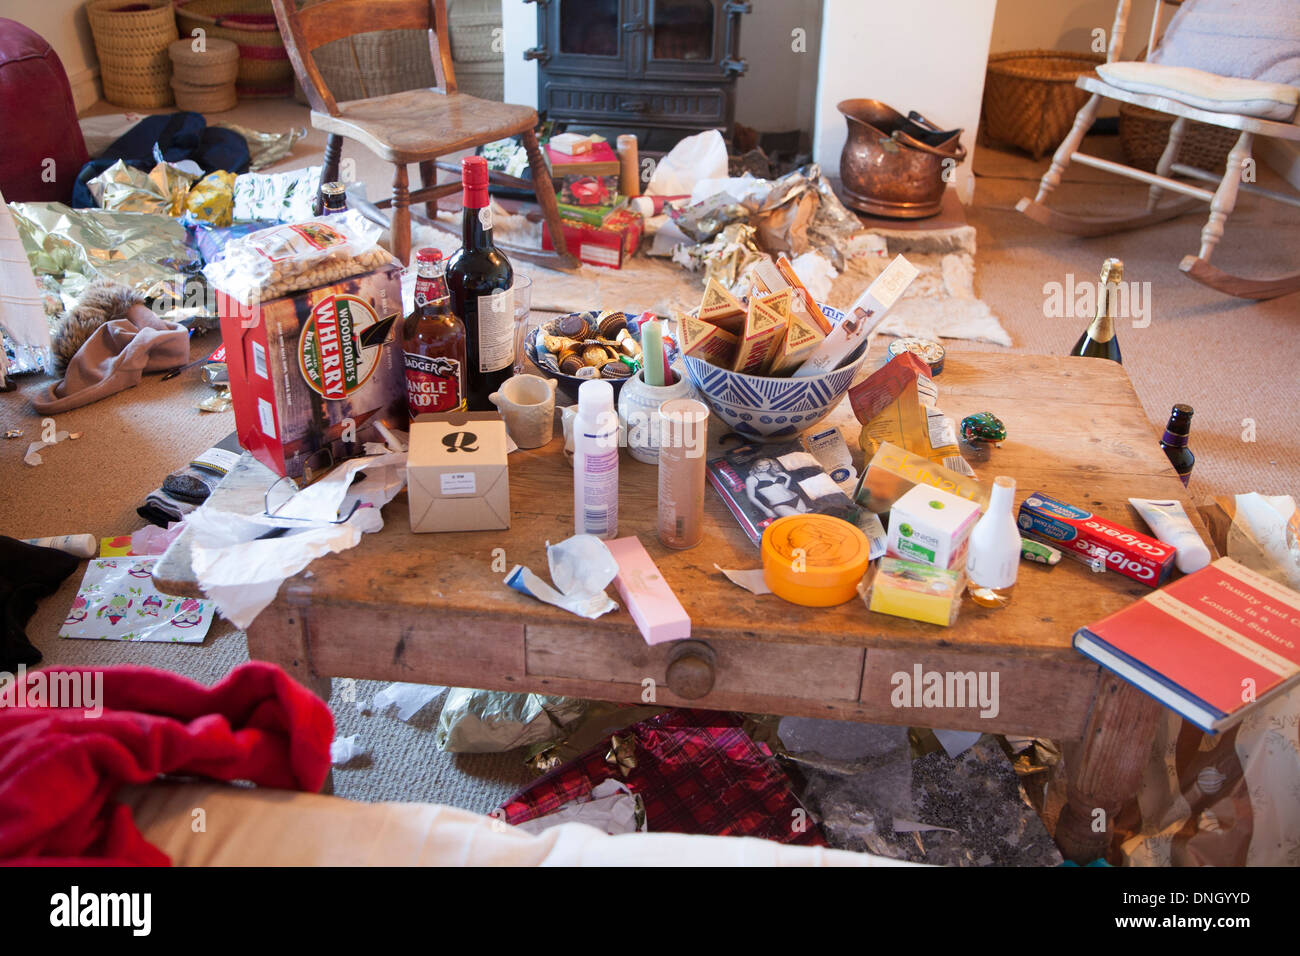 Mess of Christmas presents and wrapping paper scattered around a home, UK - Stock Image